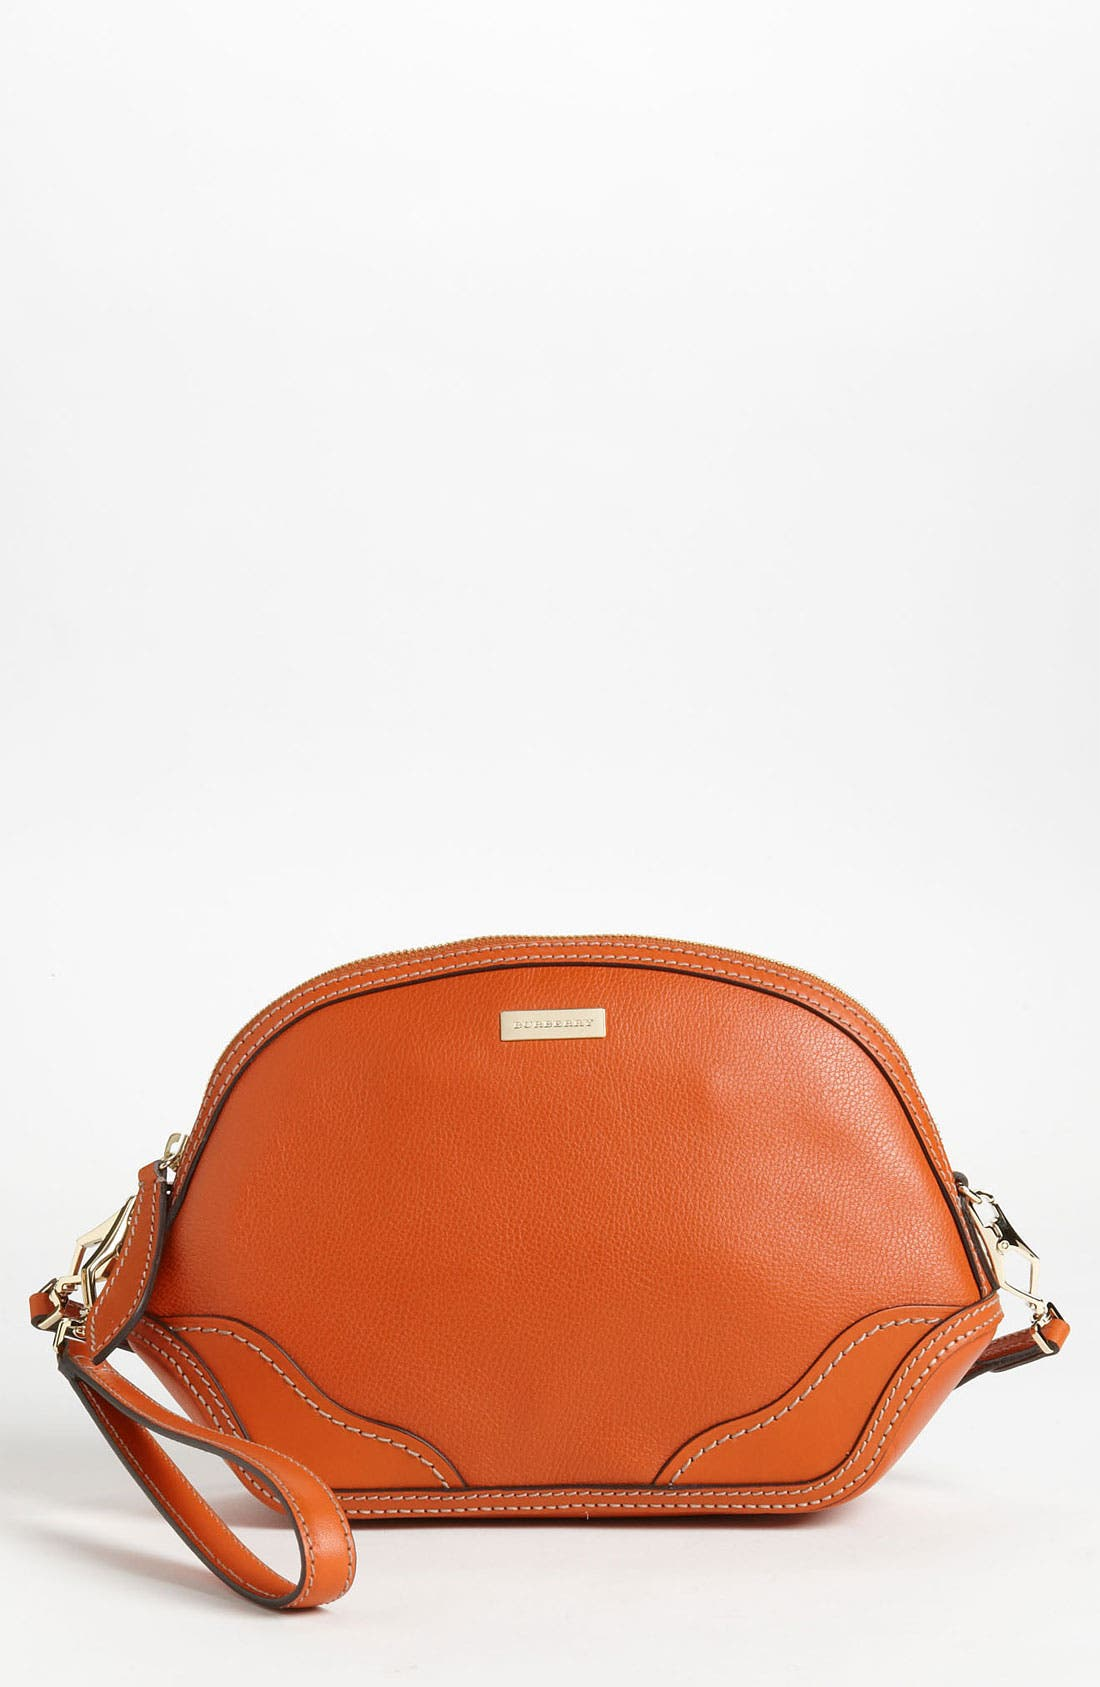 Alternate Image 1 Selected - Burberry 'Classic Grainy' Leather Crossbody Bag